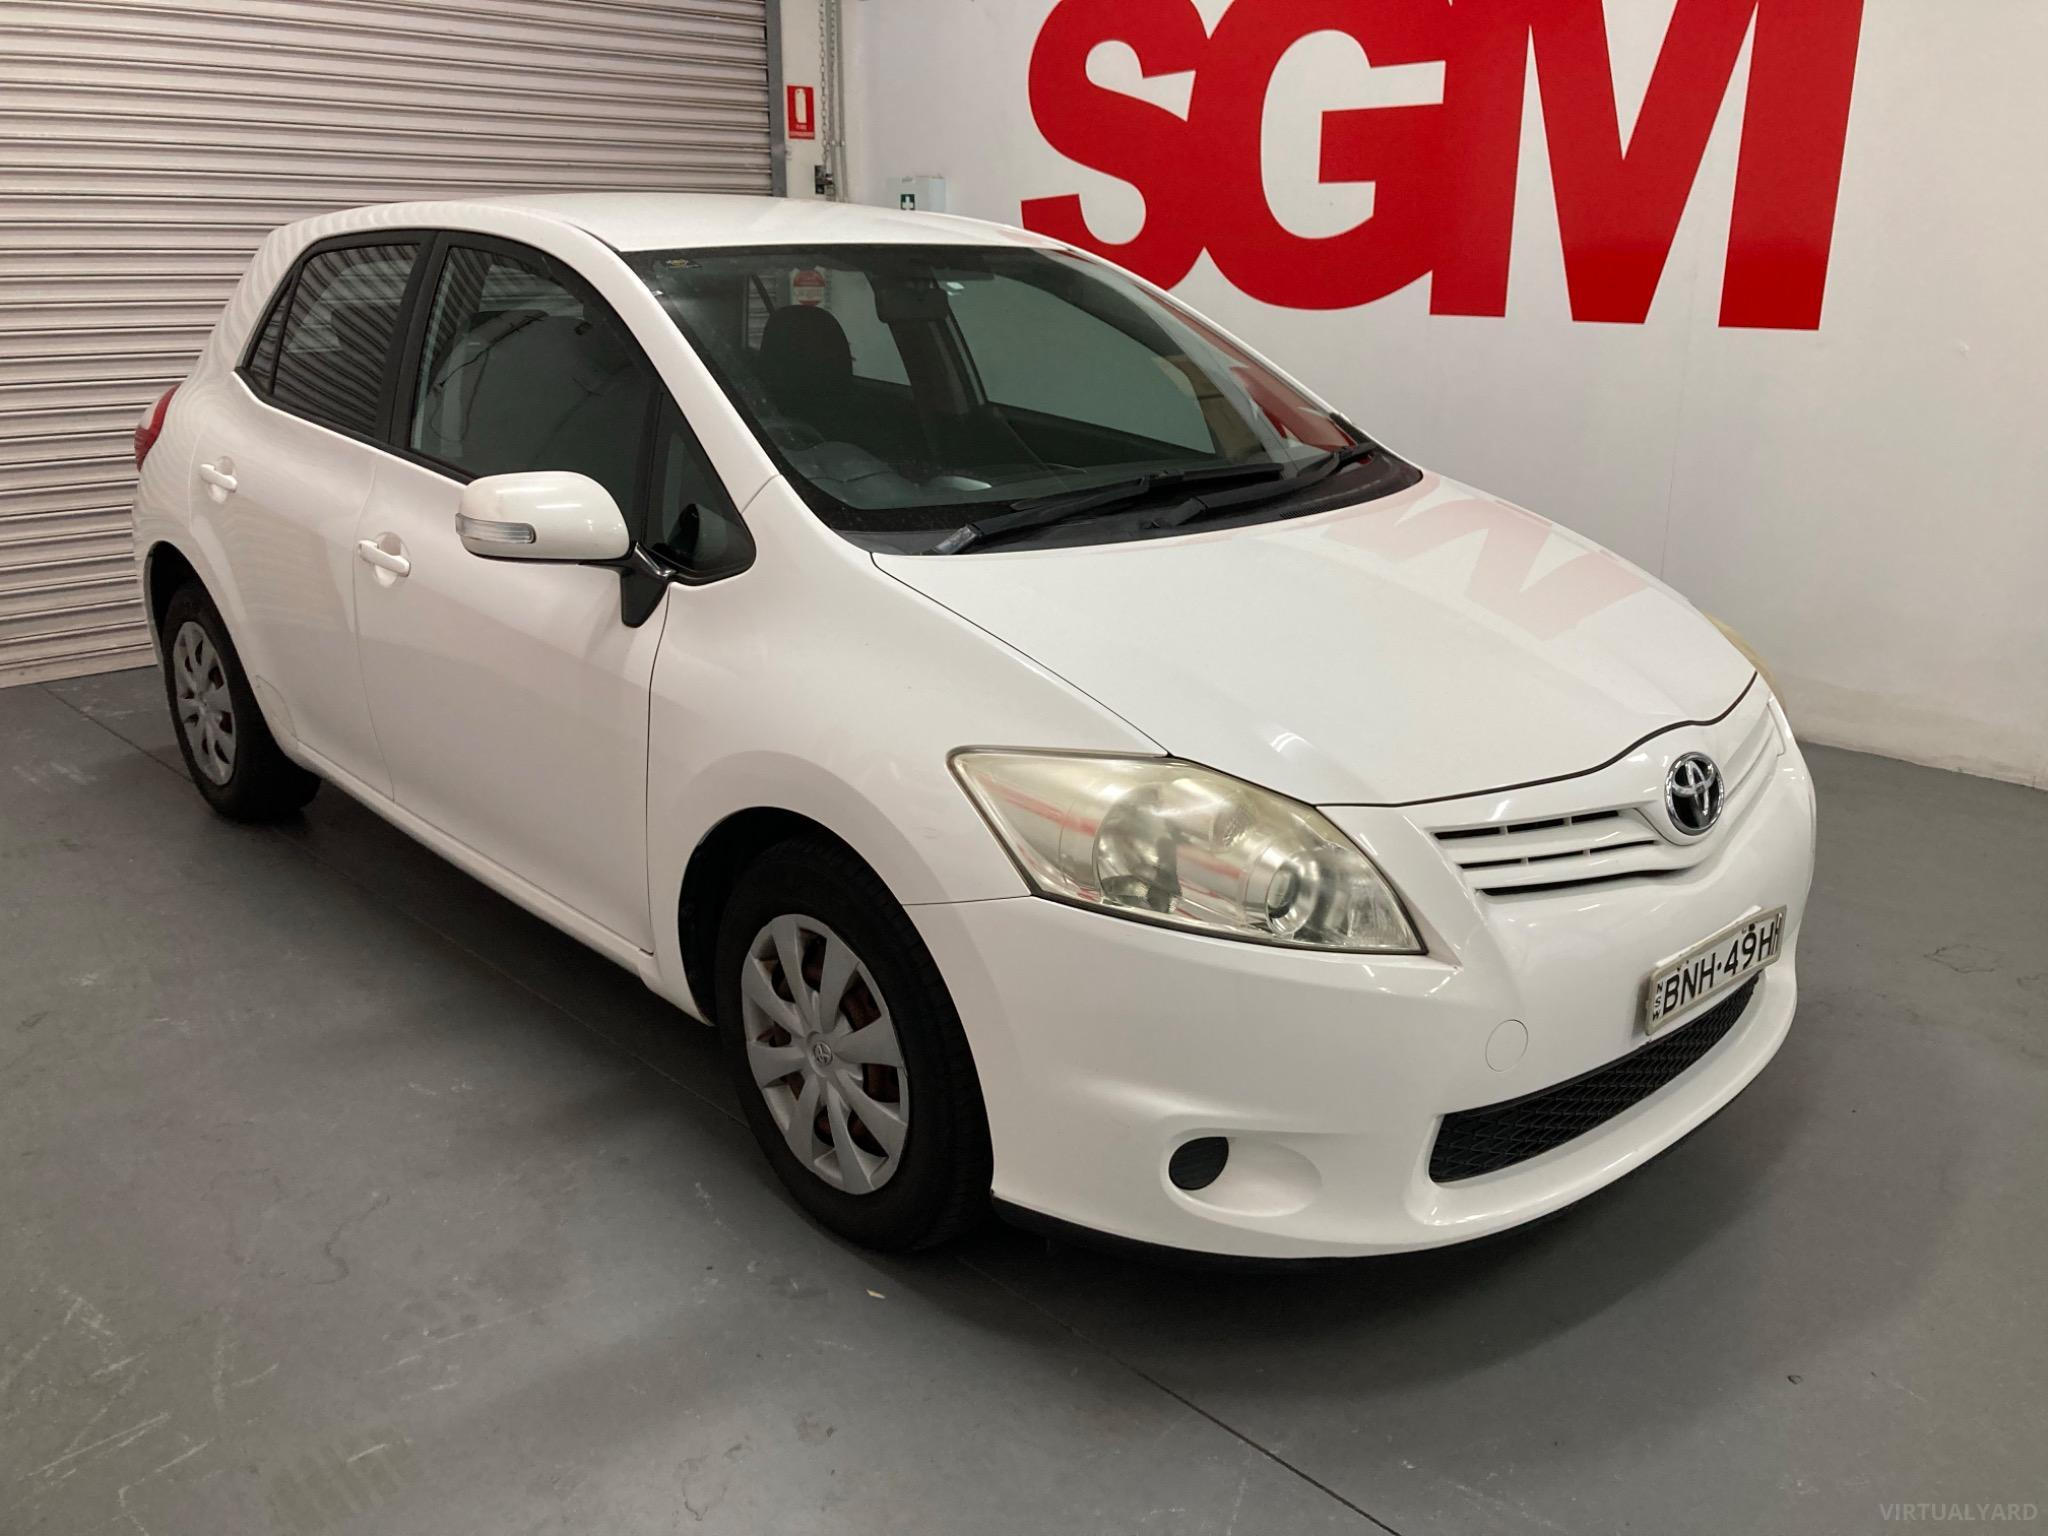 2010 Toyota Corolla ZRE152R Ascent Hatchback 5dr Man 6sp 1.8i Picture 8